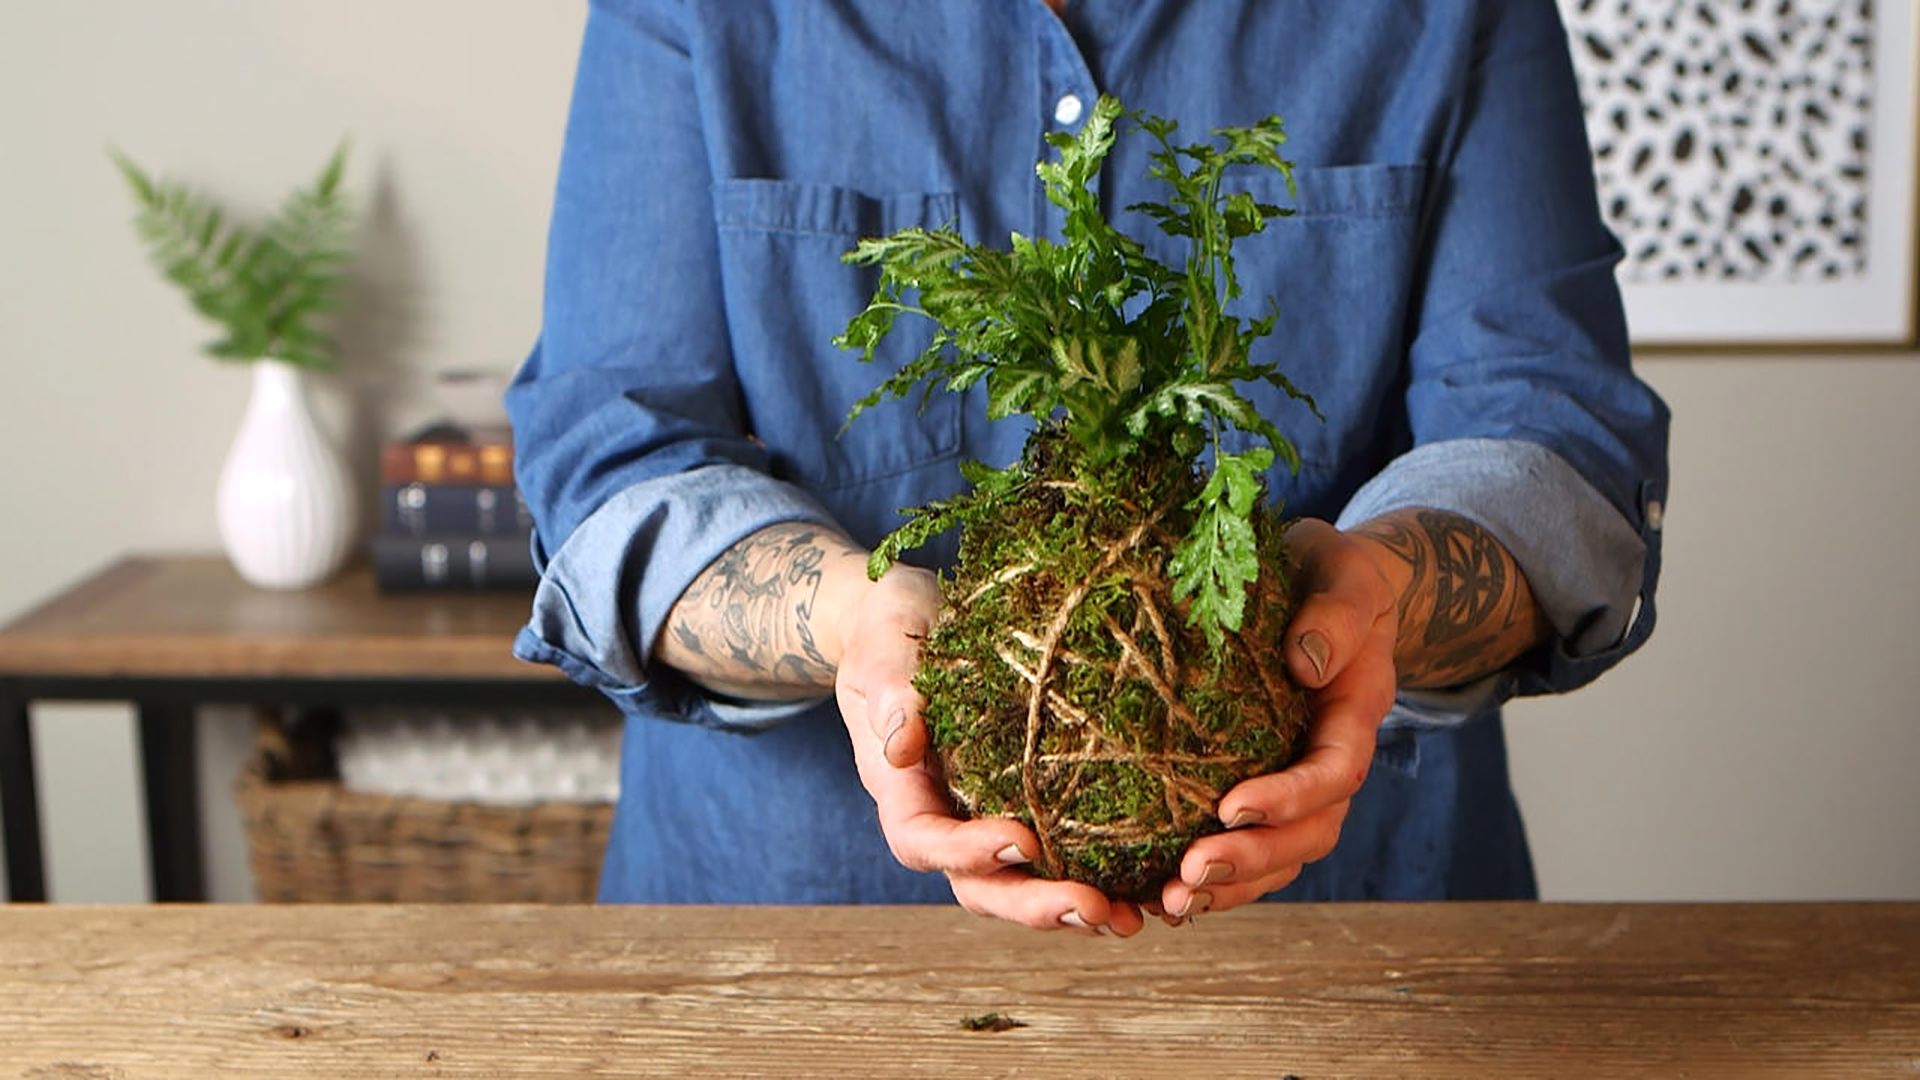 How to make a kokedama? Step by step guideline